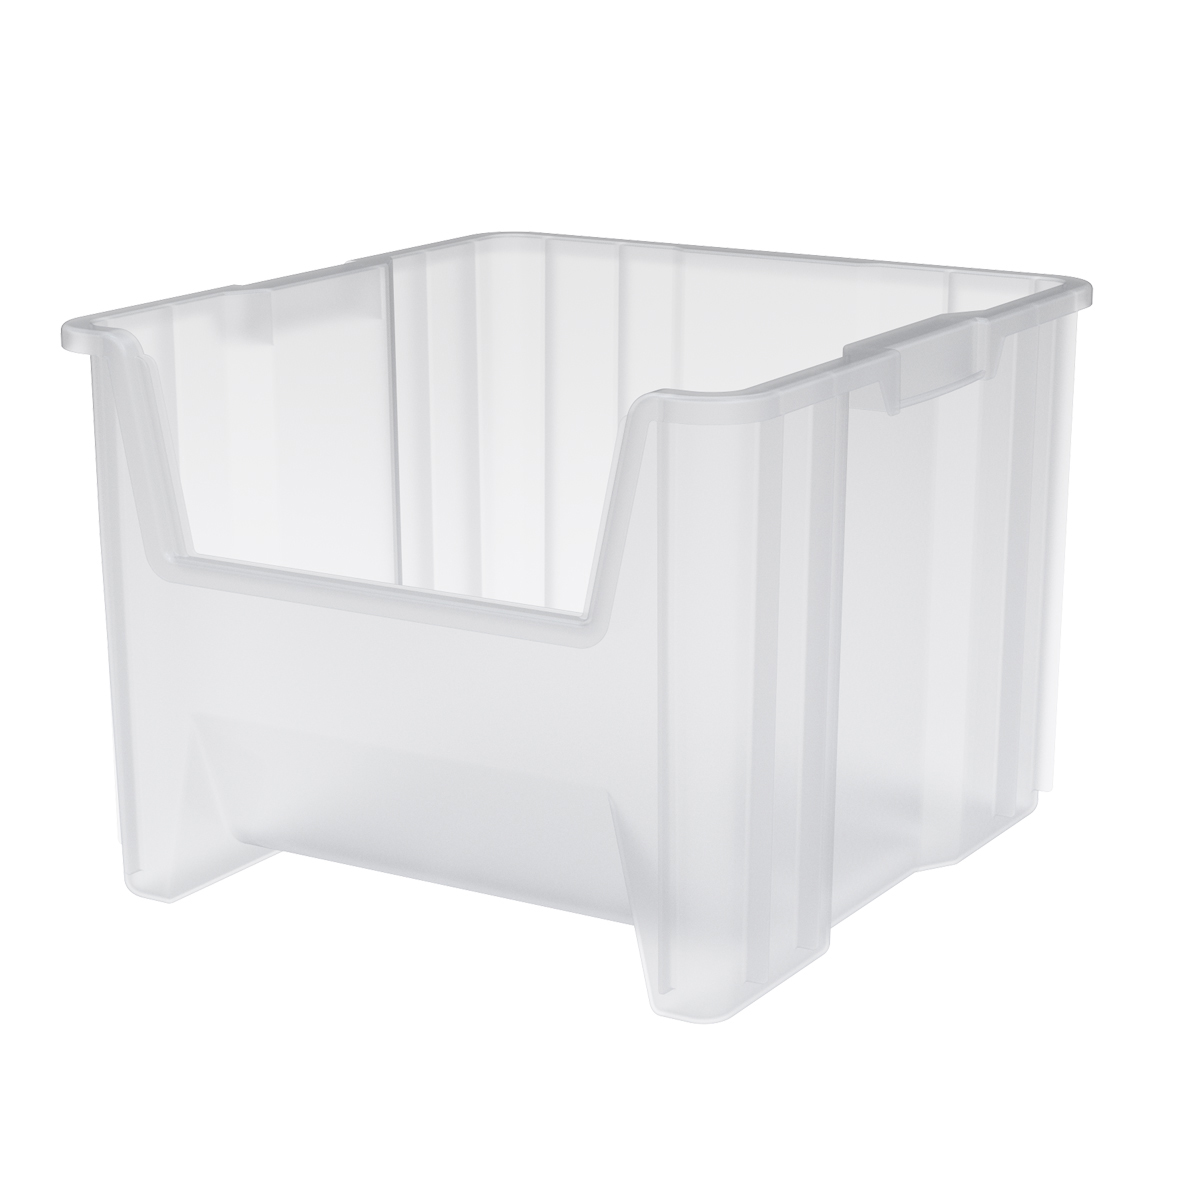 Stak-N-Store Bin 17-1/2 x 16-1/2 x 12-1/2, Clear (13018SCLAR).  This item sold in carton quantities of 2.